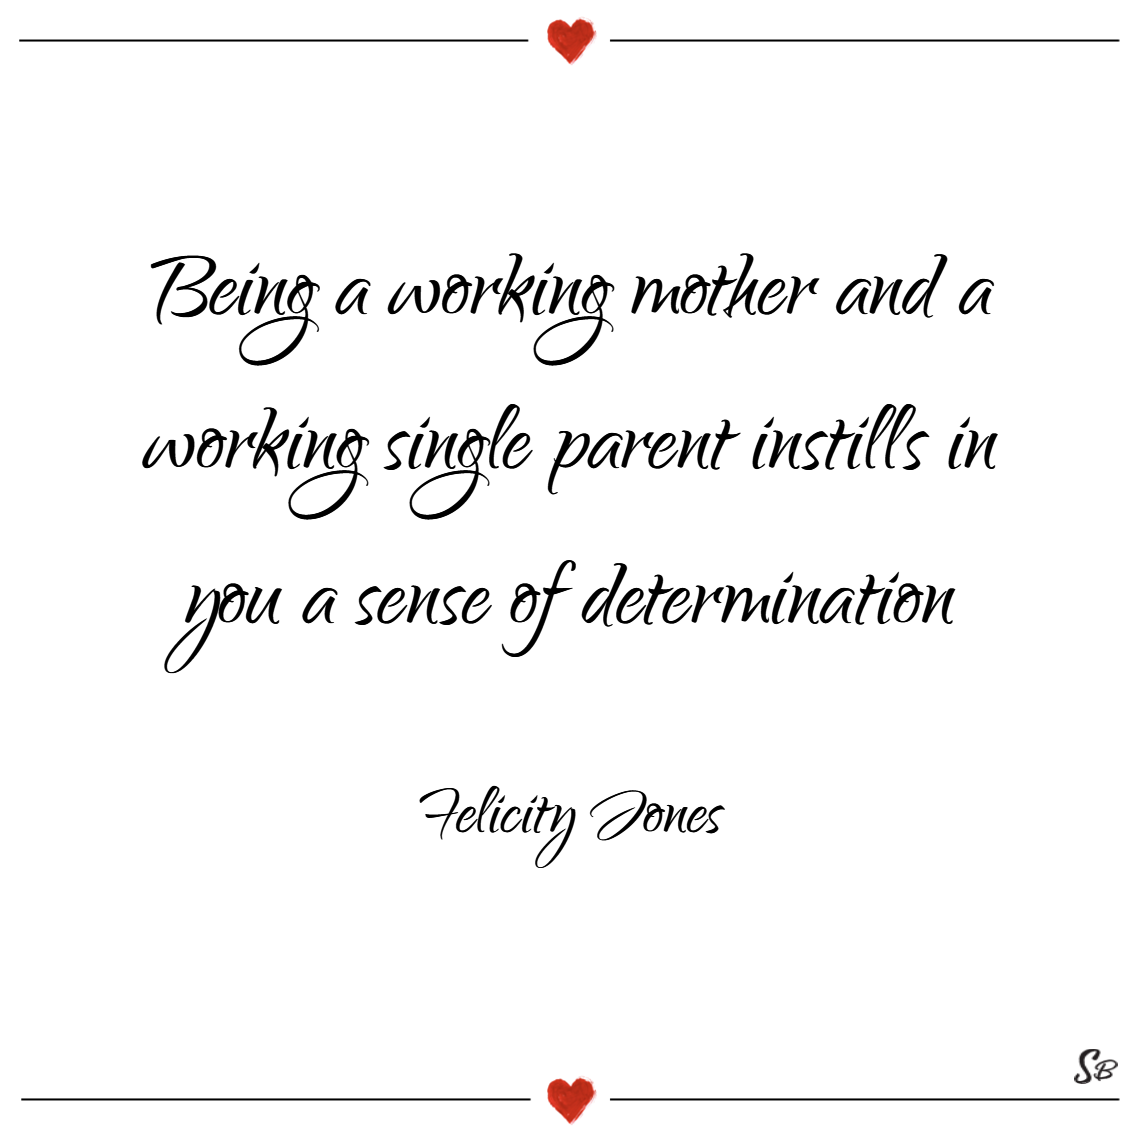 Being a working mother and a working single parent instills in you a sense of determination. – felicity jones